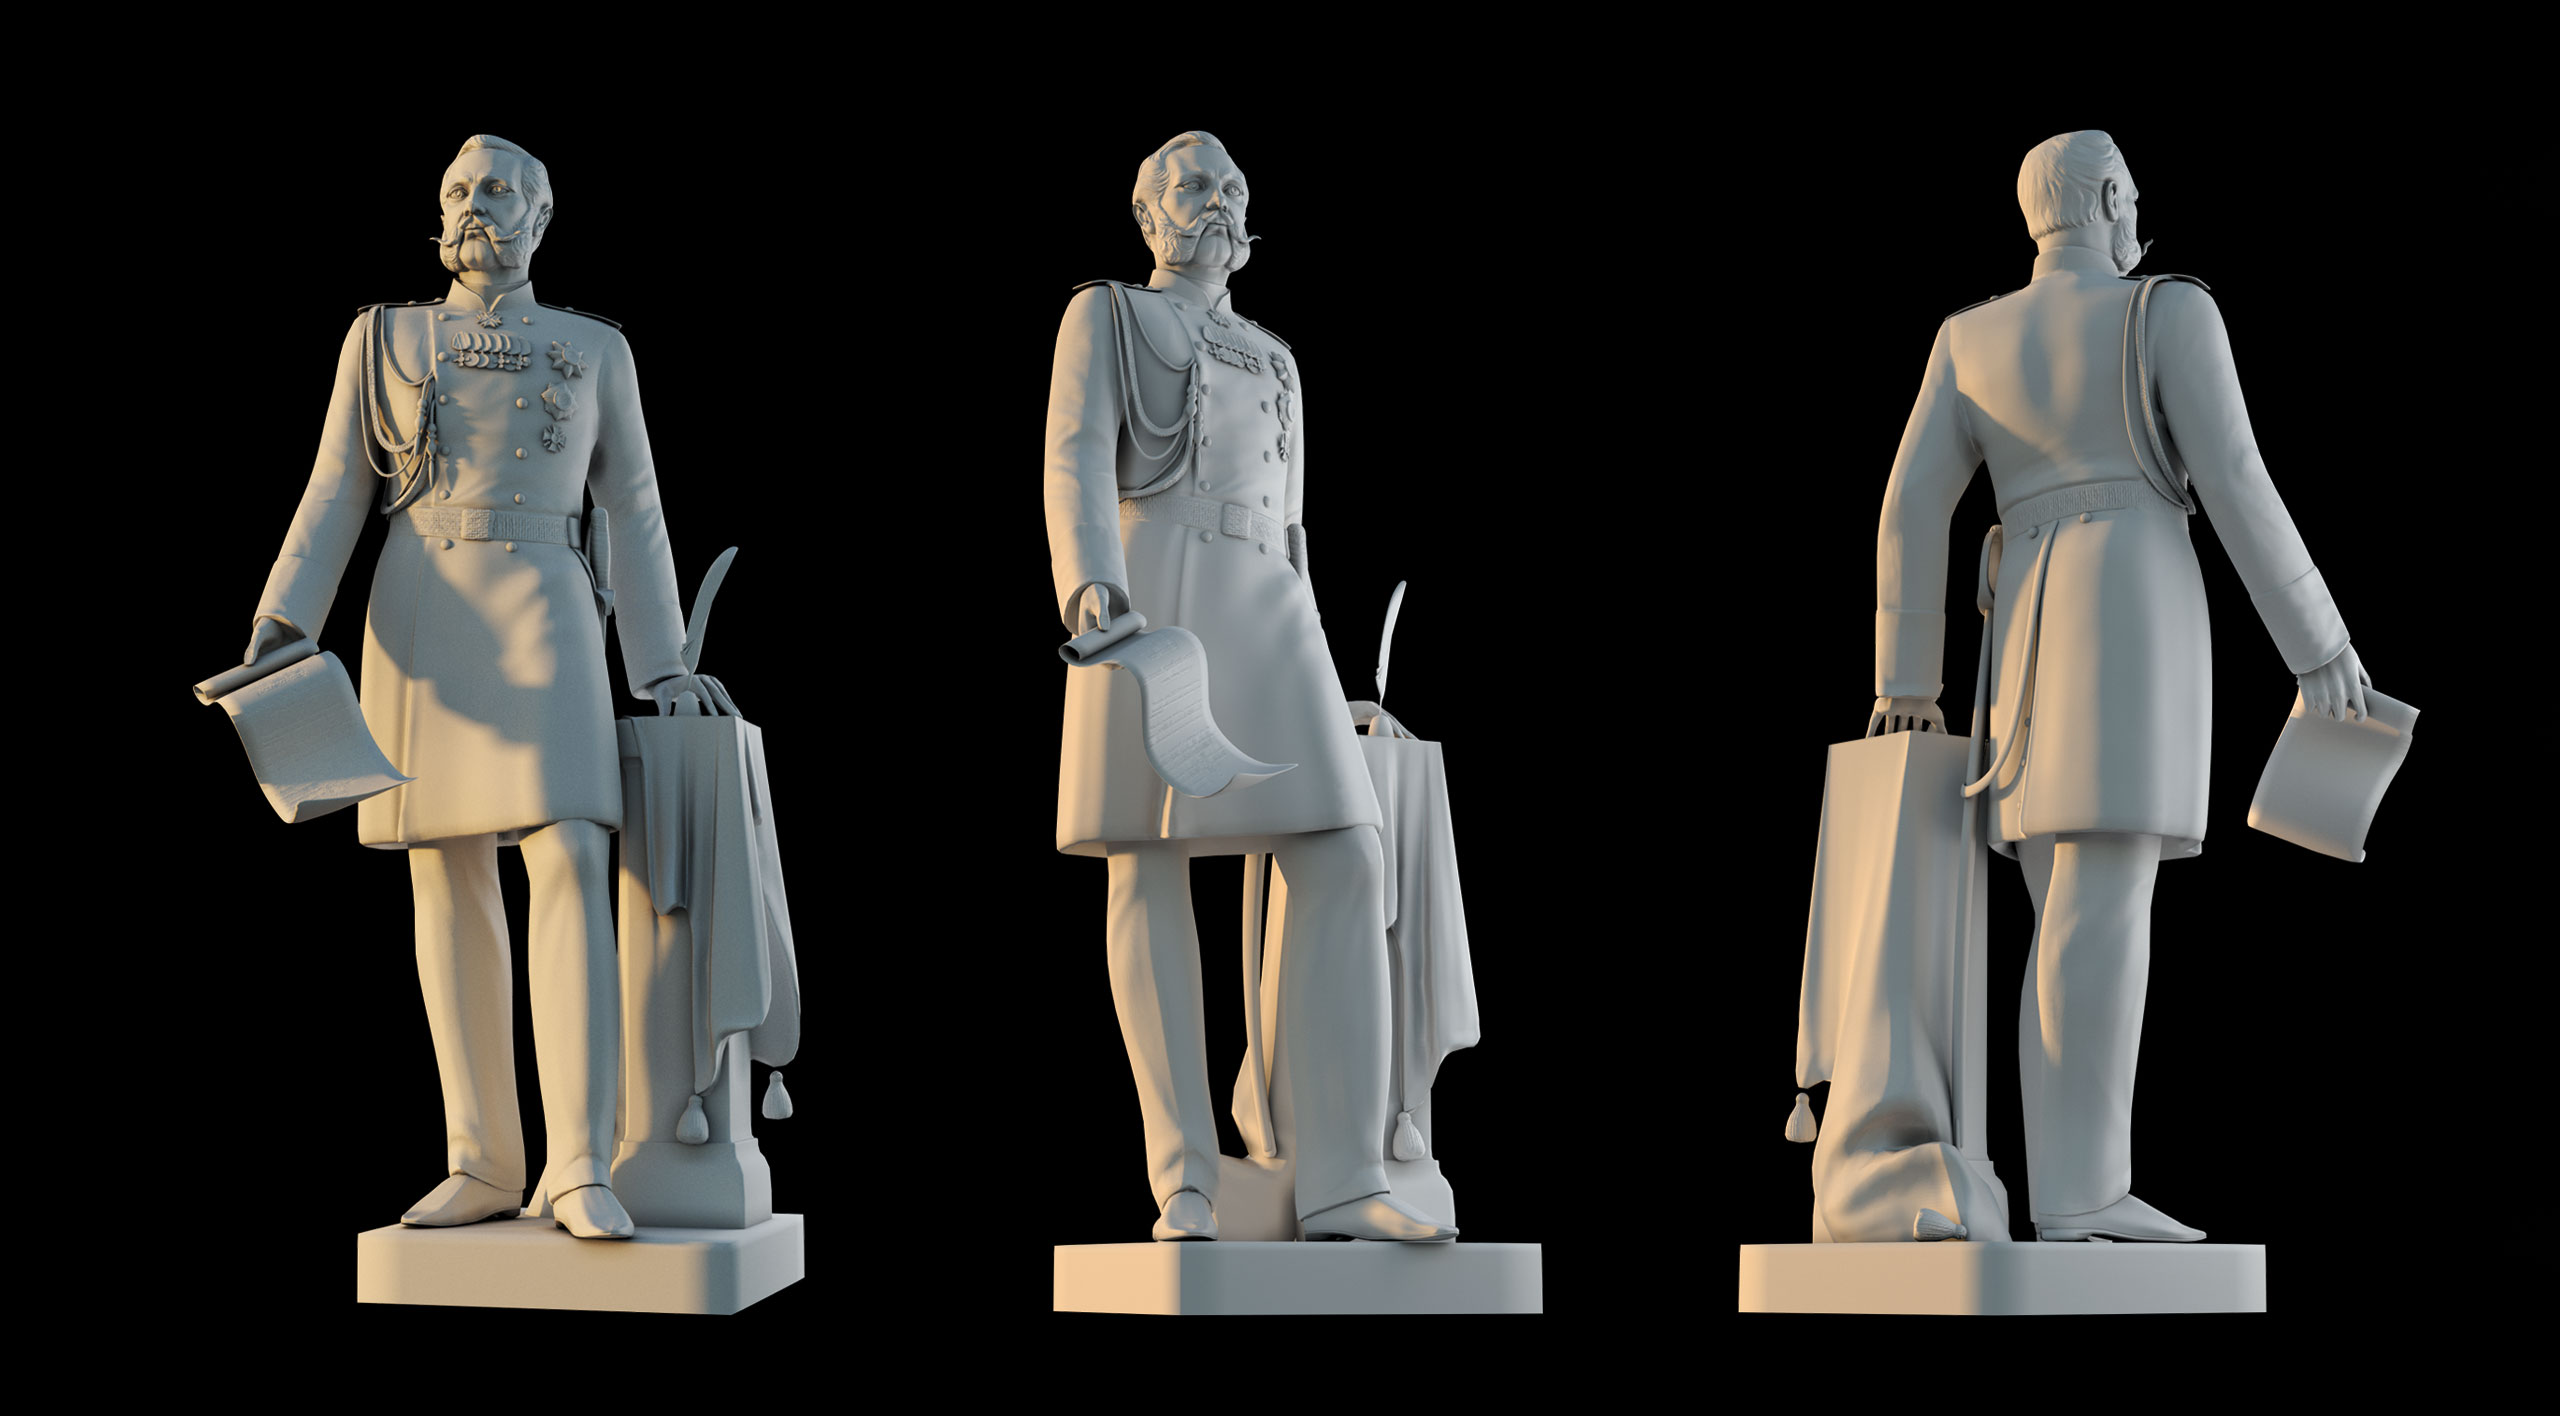 Monument to Emperor Alexander 3d model 3 main angles